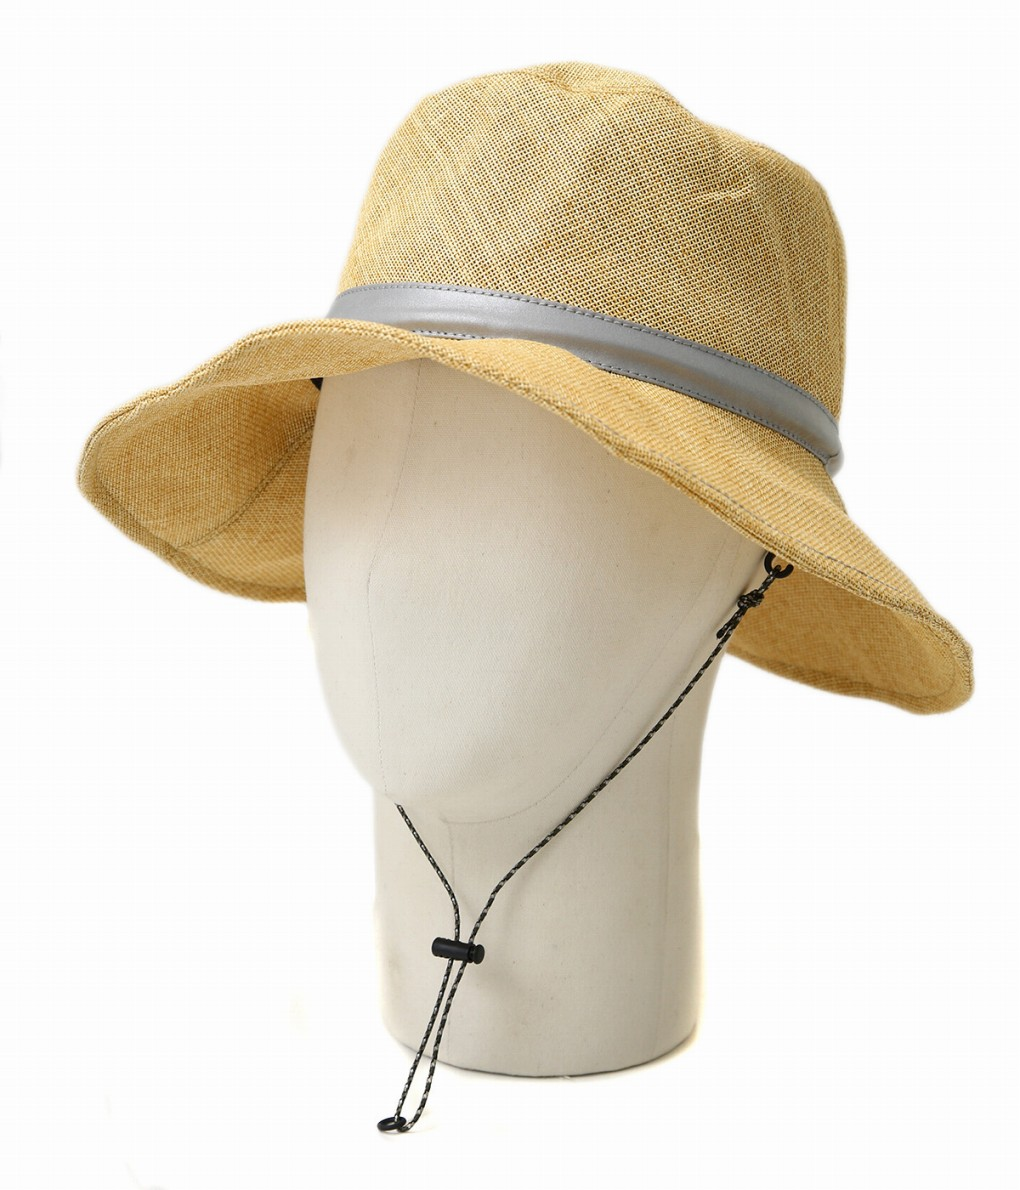 9d57305feac The hat using the paper cross superior in breathability. As the paper cross  is light and is rounded